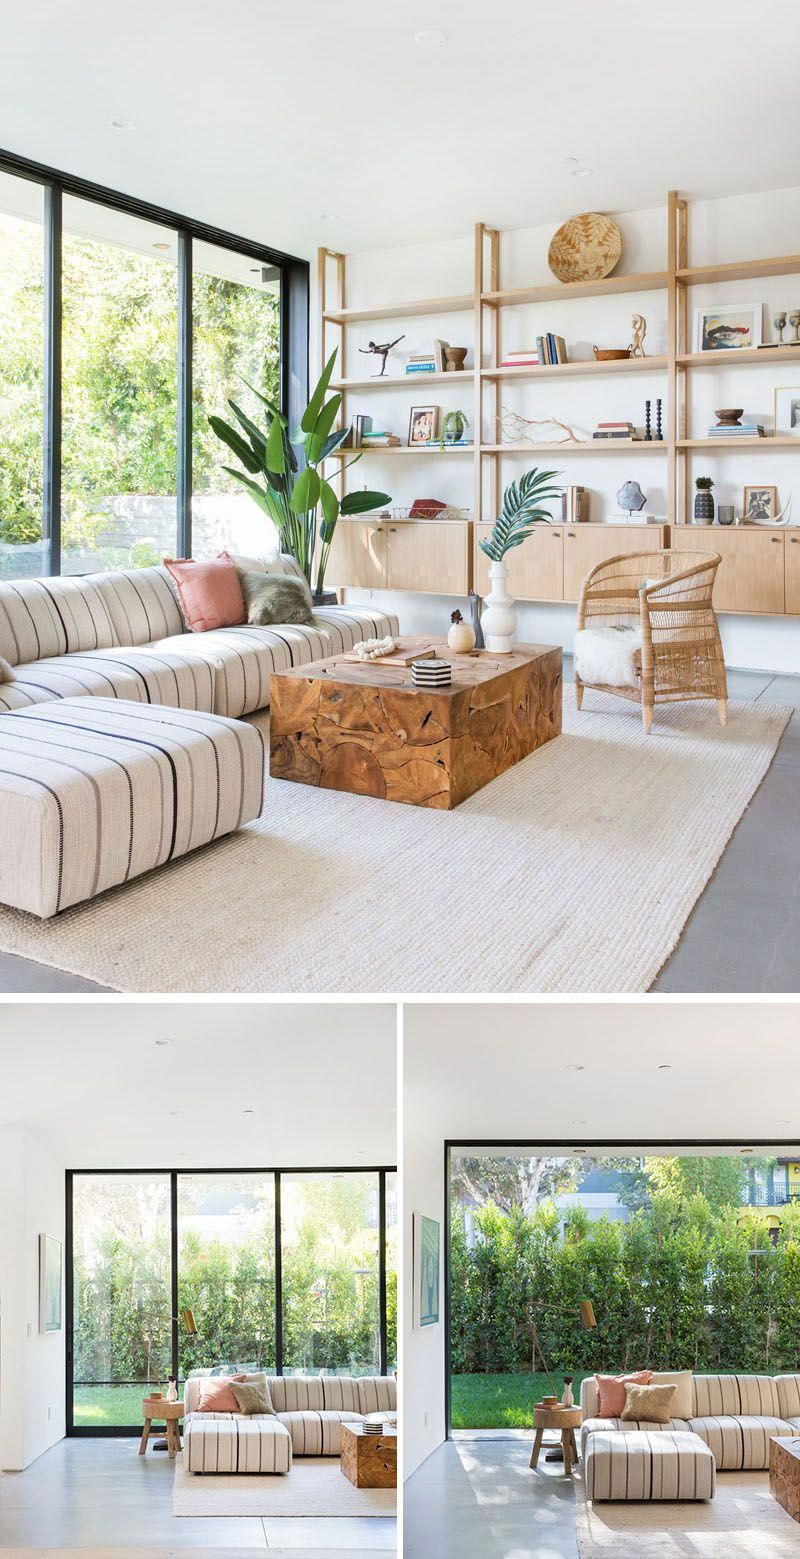 This contemporary living room features a wall of light wood shelving, while floor-to-ceiling sliding glass wall floods the interior with natural light. #LivingRoom #Shelving #SlidingGlassWall #livingroomlayout